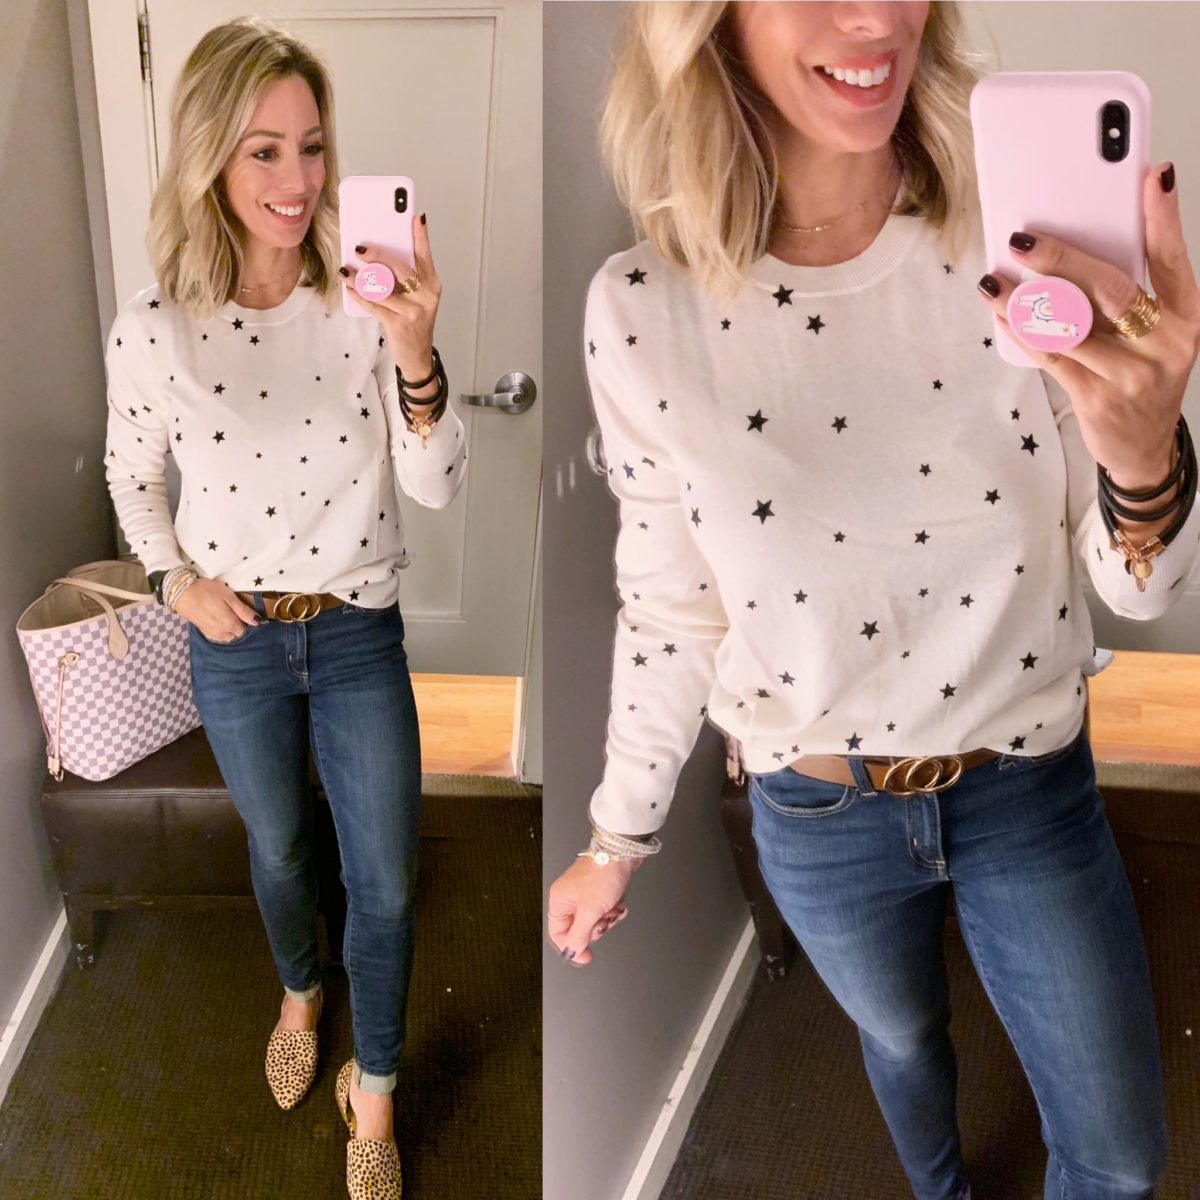 star shirt and jeans